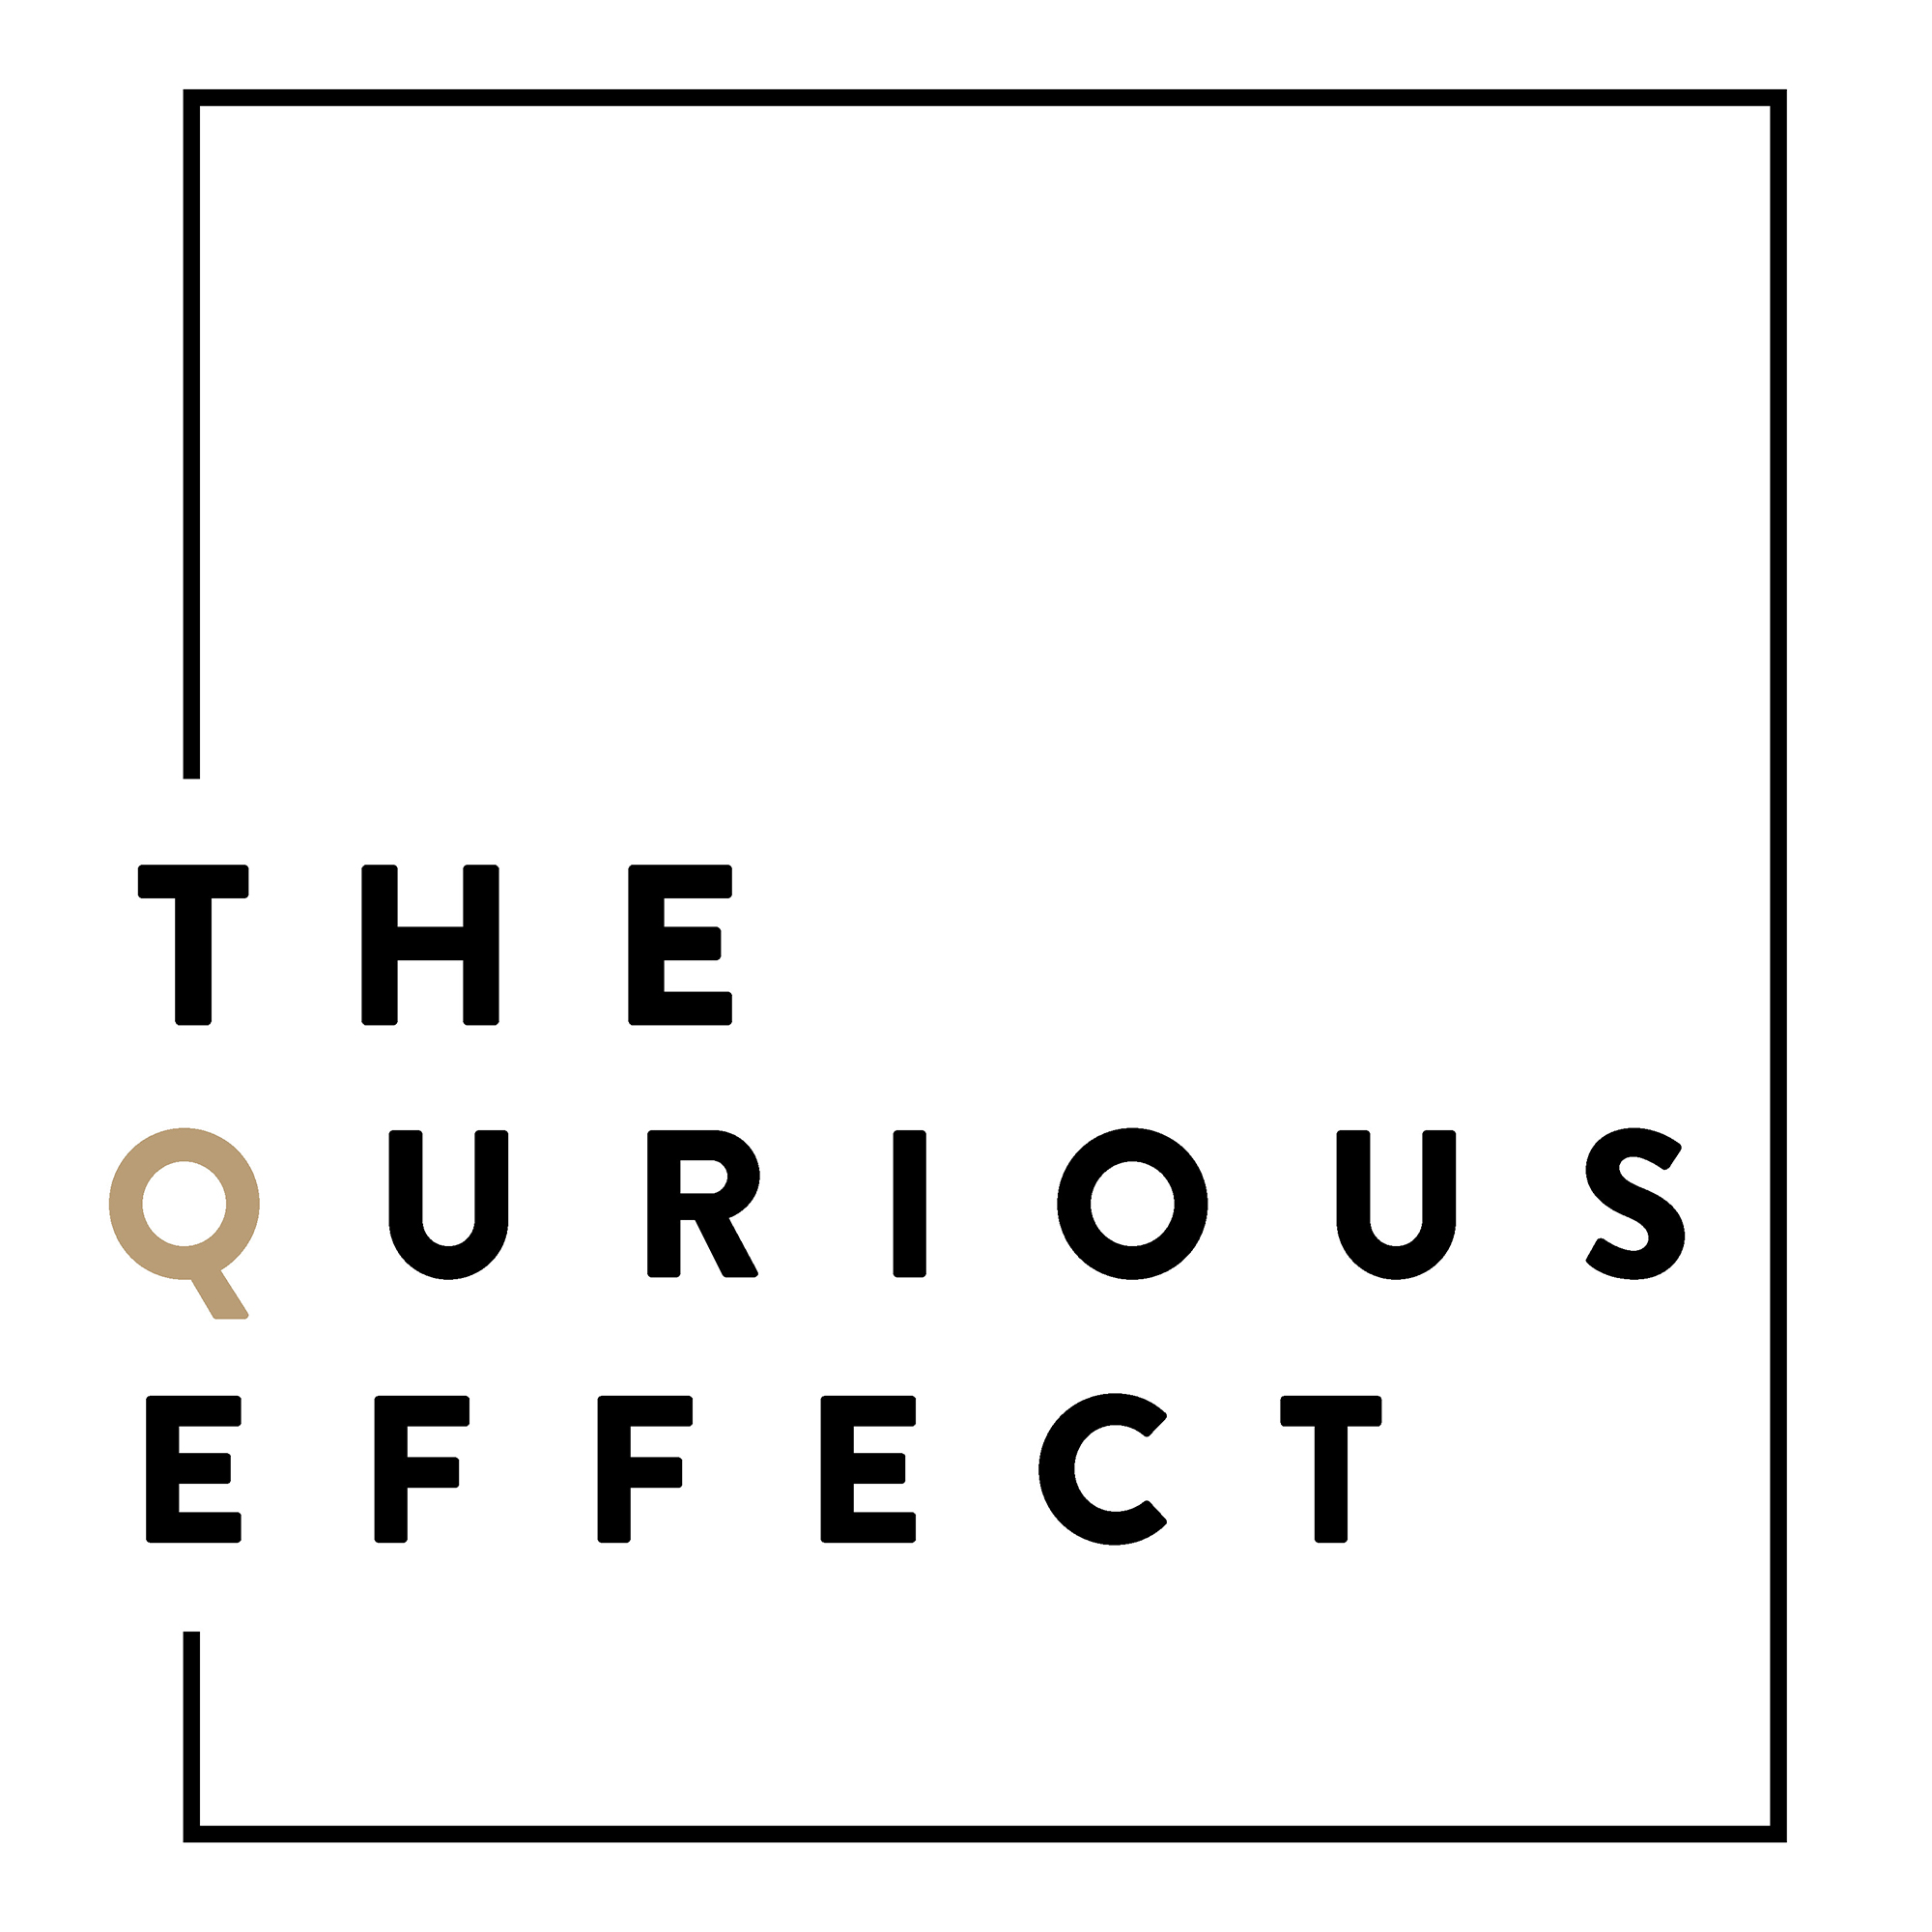 The Qurious Effect | Design for Nonprofits and Foundations | Santa Barbara, CA